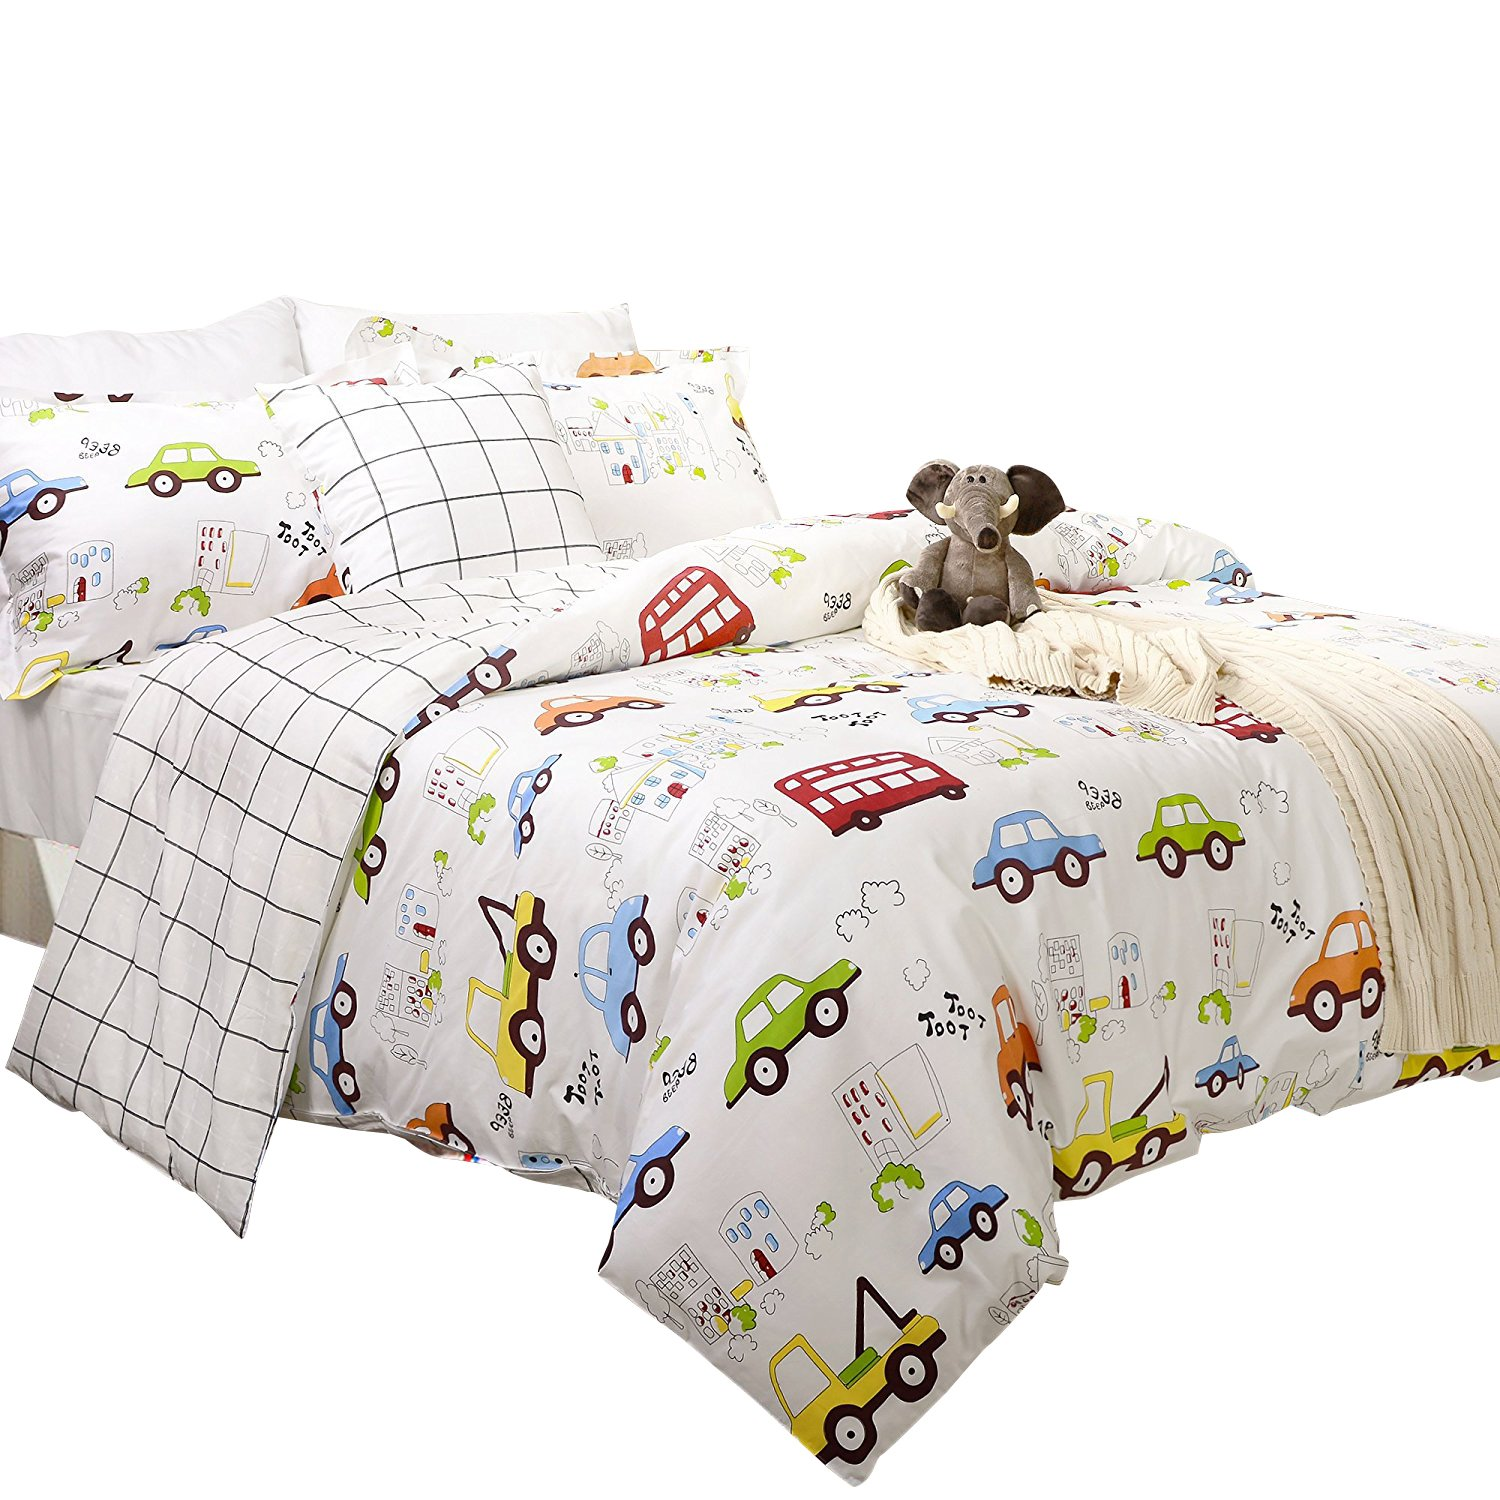 502acb27a47a Kids Boys Bedding Cars Vehicles Duvet Cover Set 3-Piece Twin Size (No  Comforter Included): Amazon.ca: Home & Kitchen